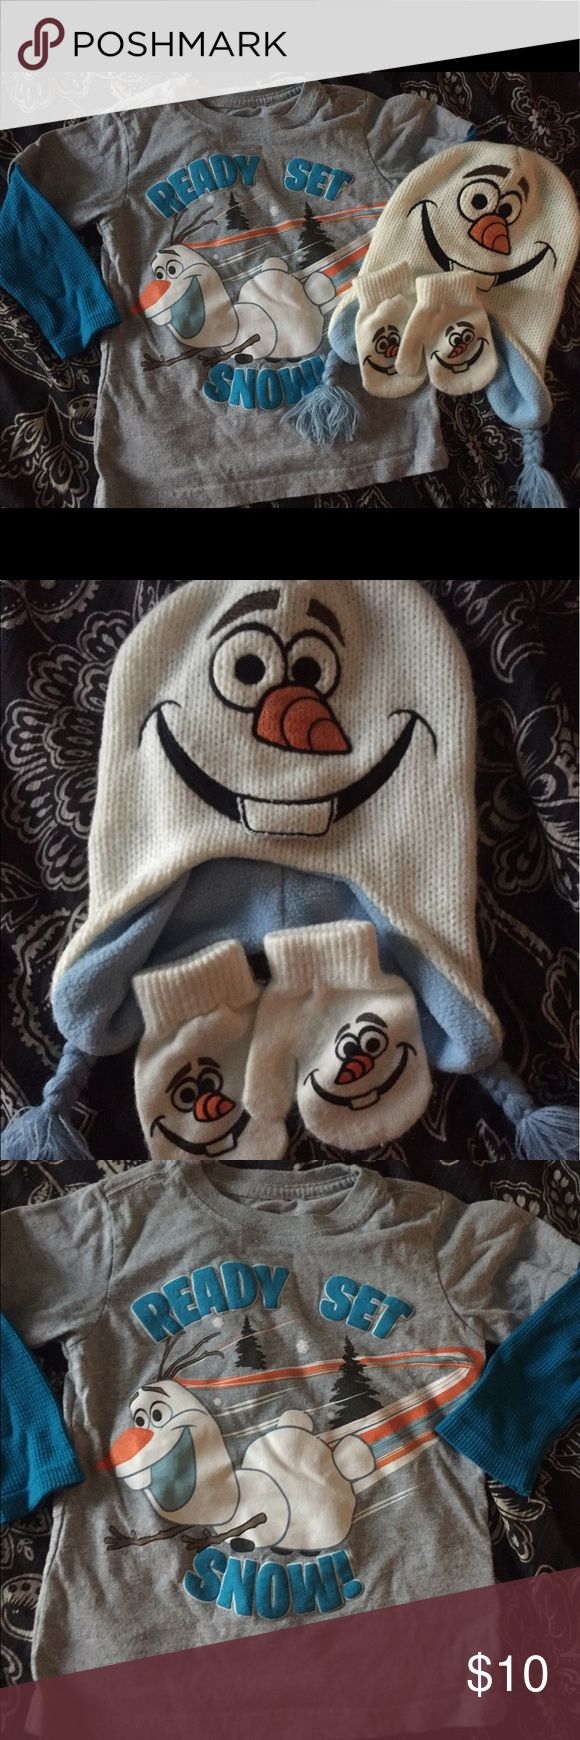 """3-piece Olaf winter set Grey Tshiet, with thermal blue long sleeves. Olaf picture with """"Ready Set Snow"""" printed on it. Matching knit hat, with Olaf eyes and nose and smile, and two matching gloves! Disney Matching Sets"""